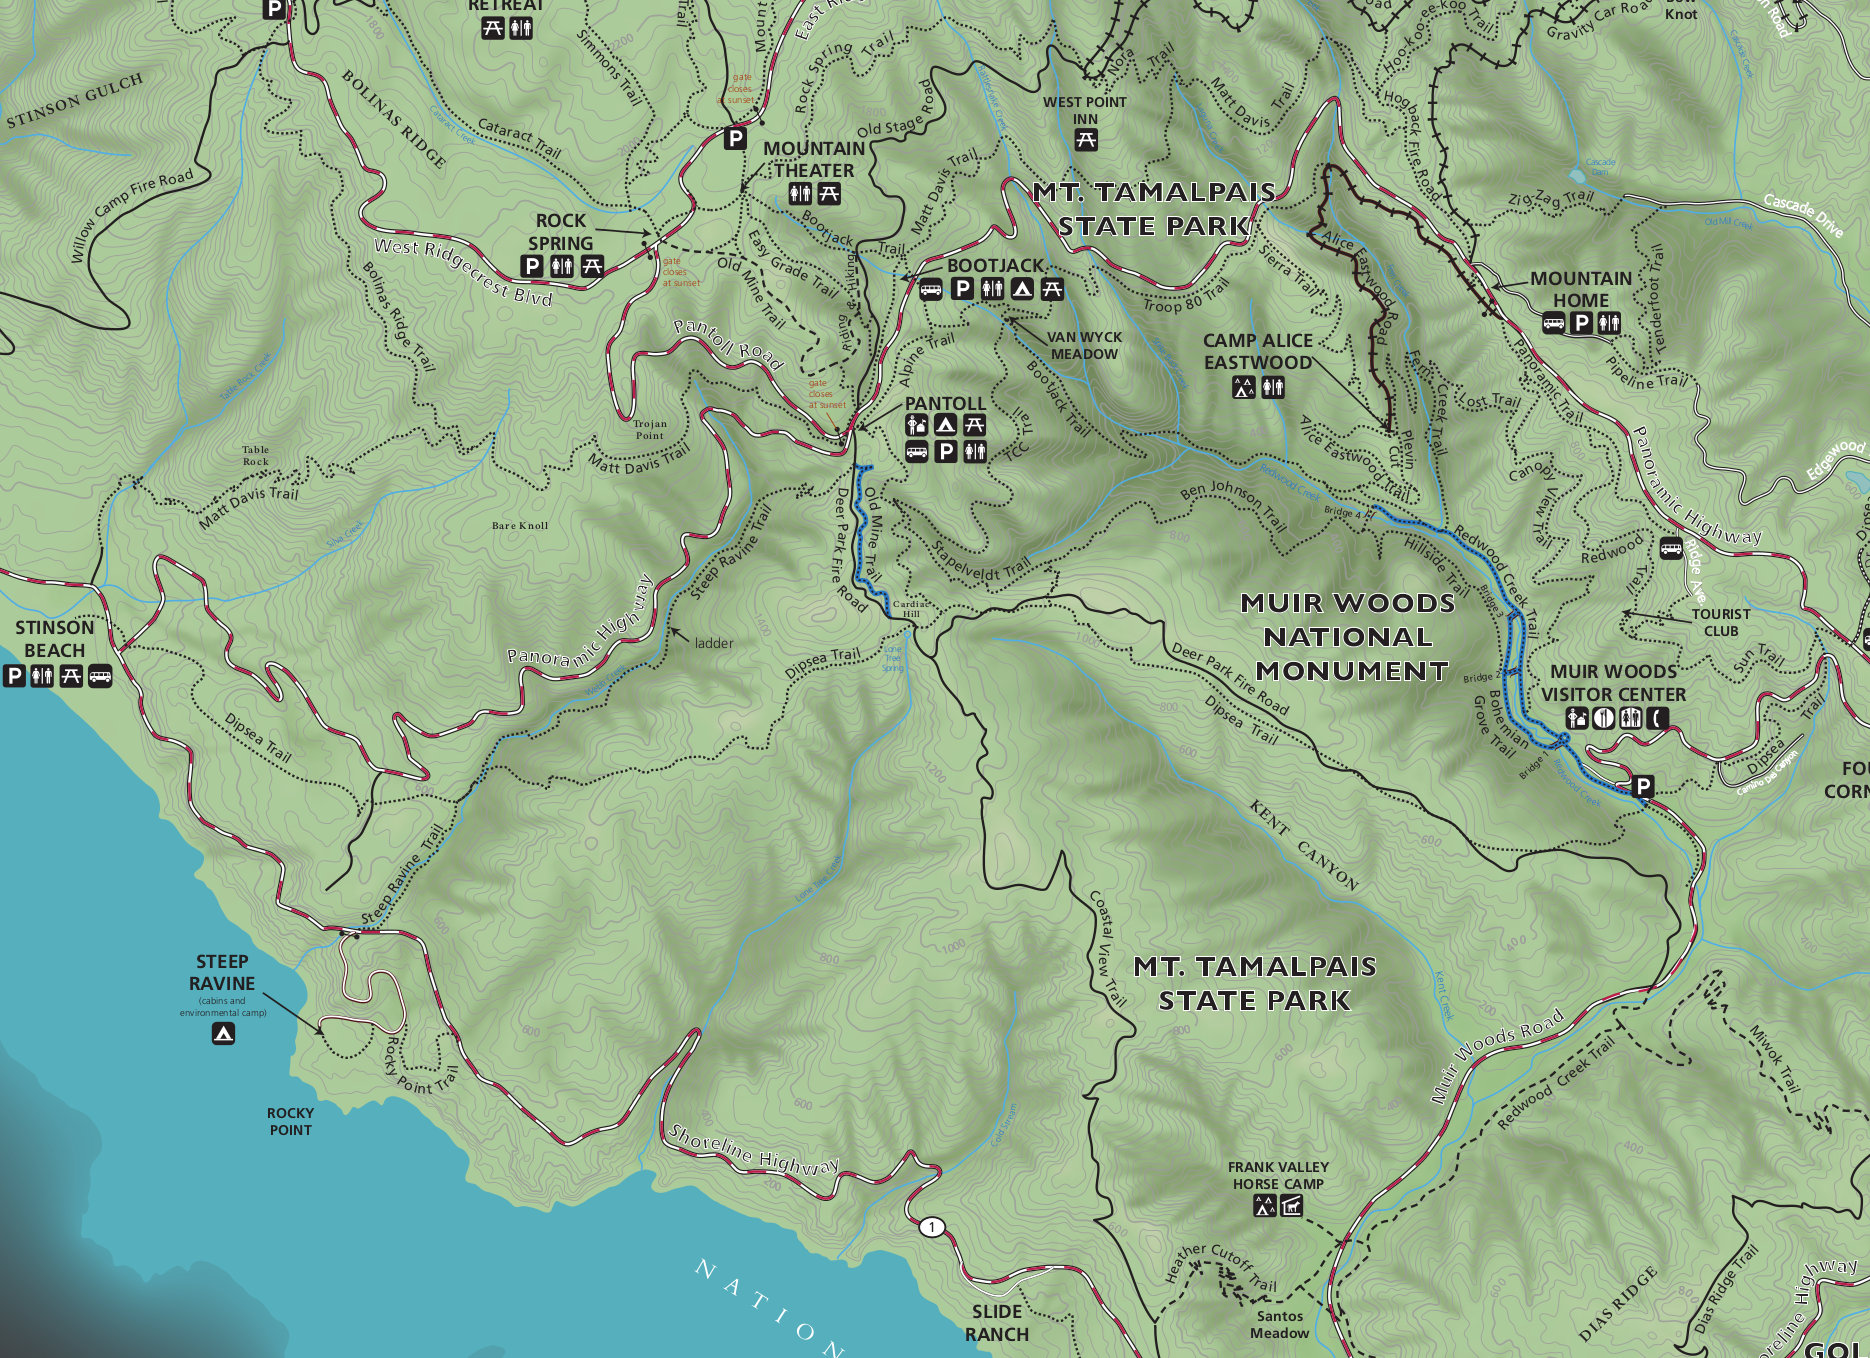 Muir woods maps npmaps just free maps period muir woods trail and topo map publicscrutiny Image collections